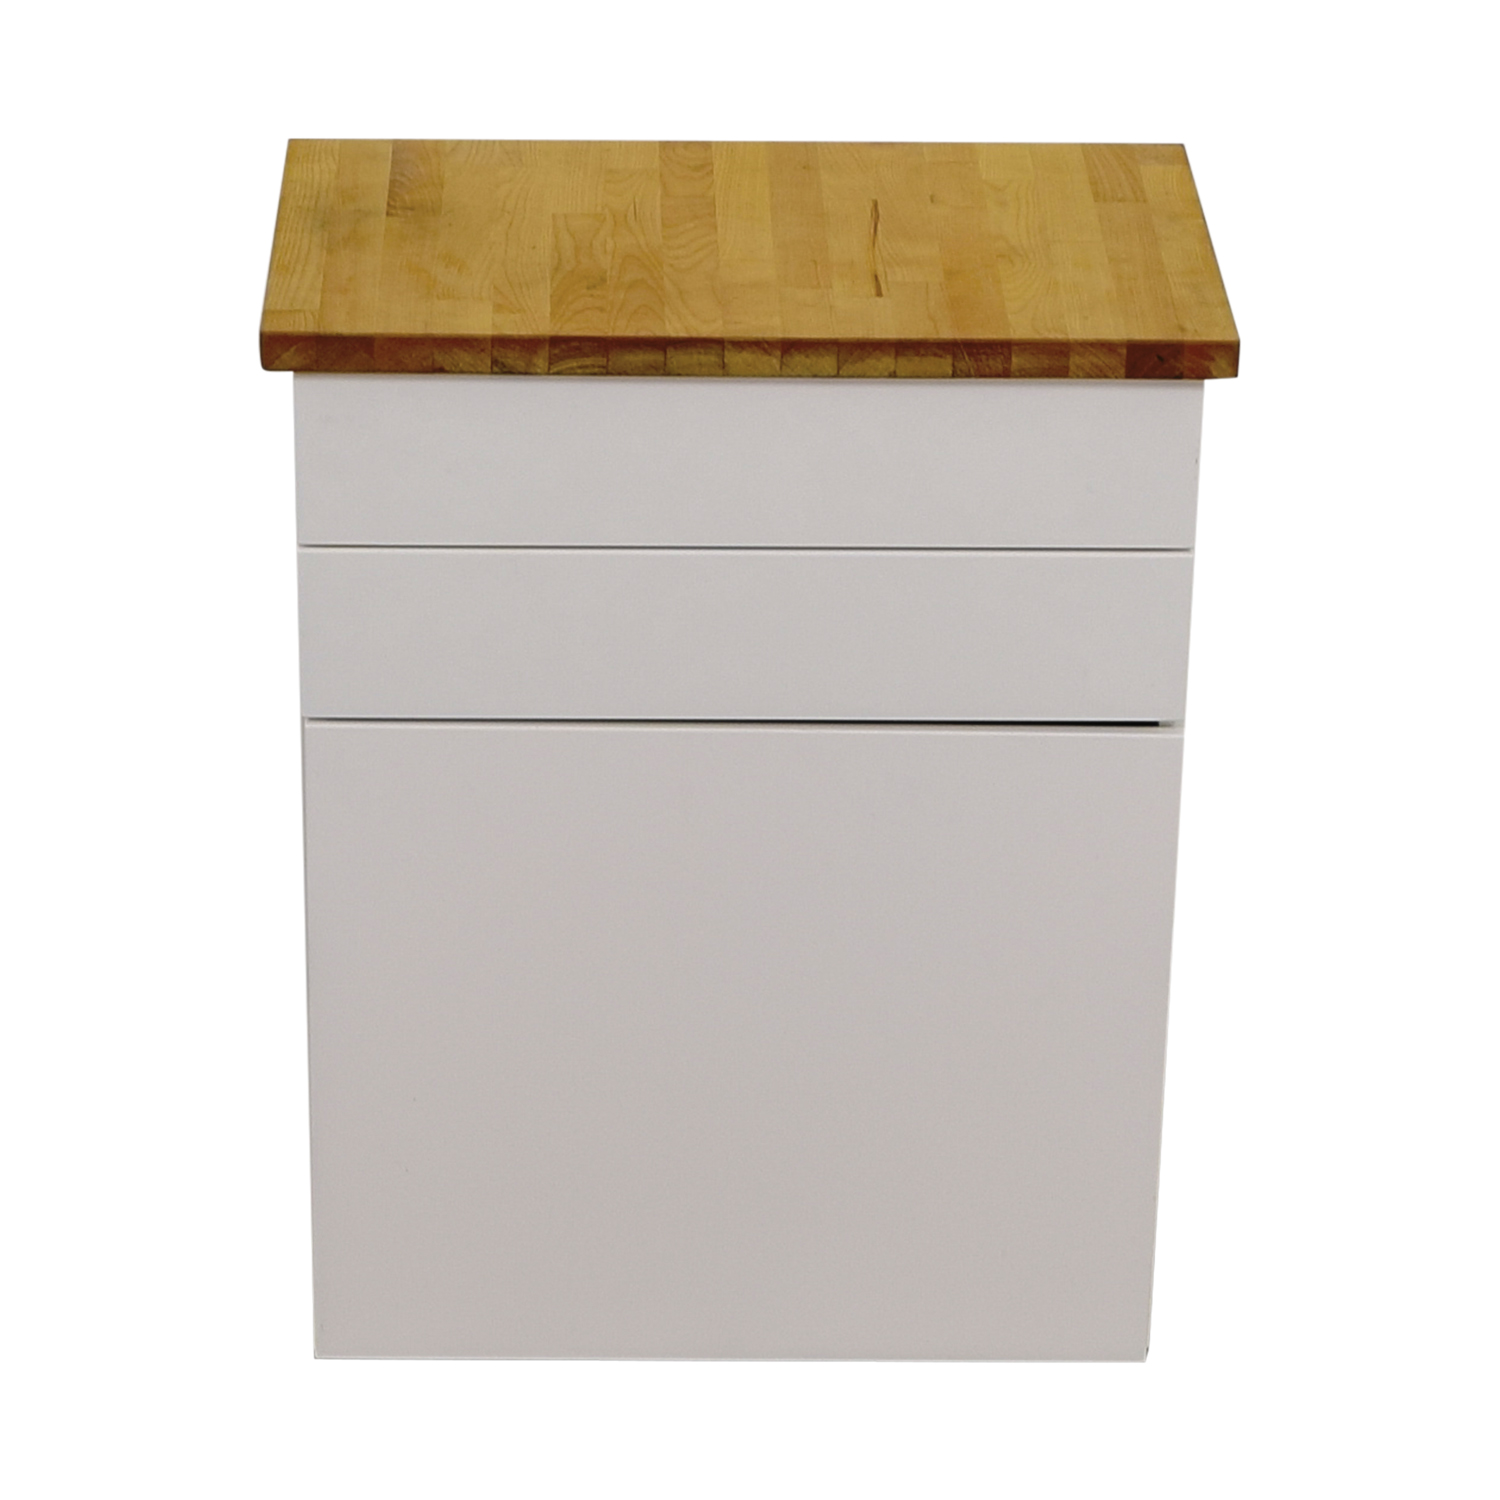 IKEA White Butcher Block Counter Cabinet with Two Drawers sale